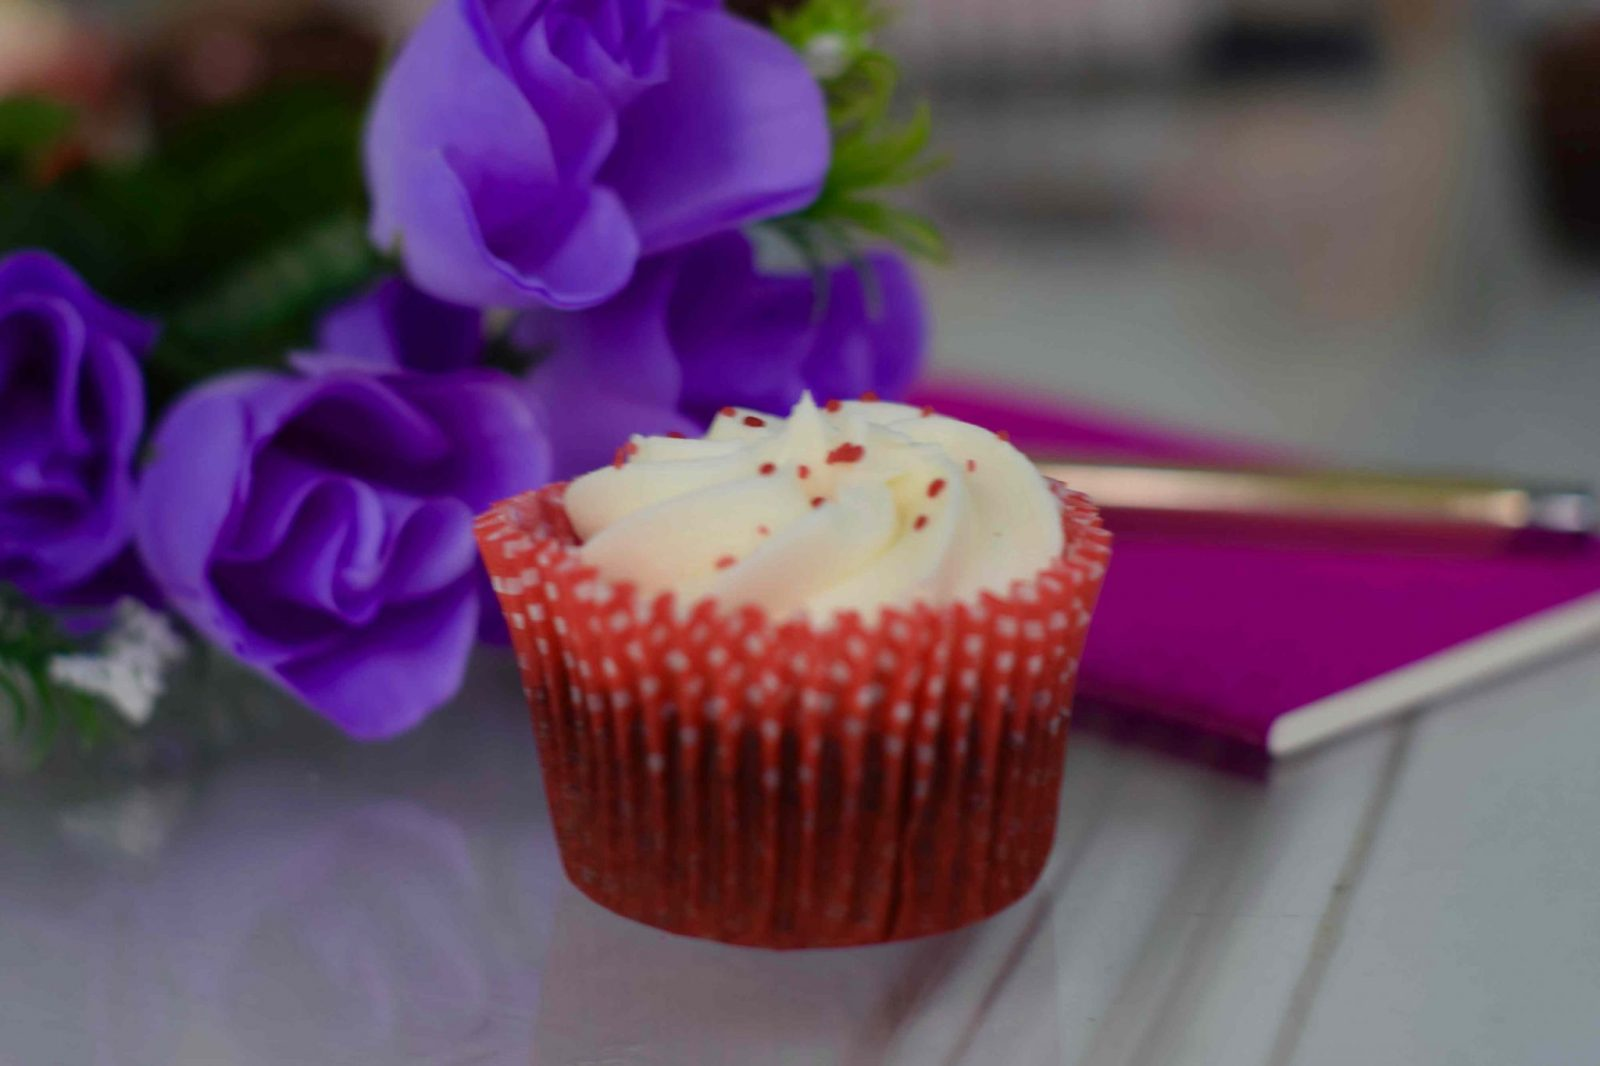 Blogger Twenty-Something City self care with purple flowers and a cupcake